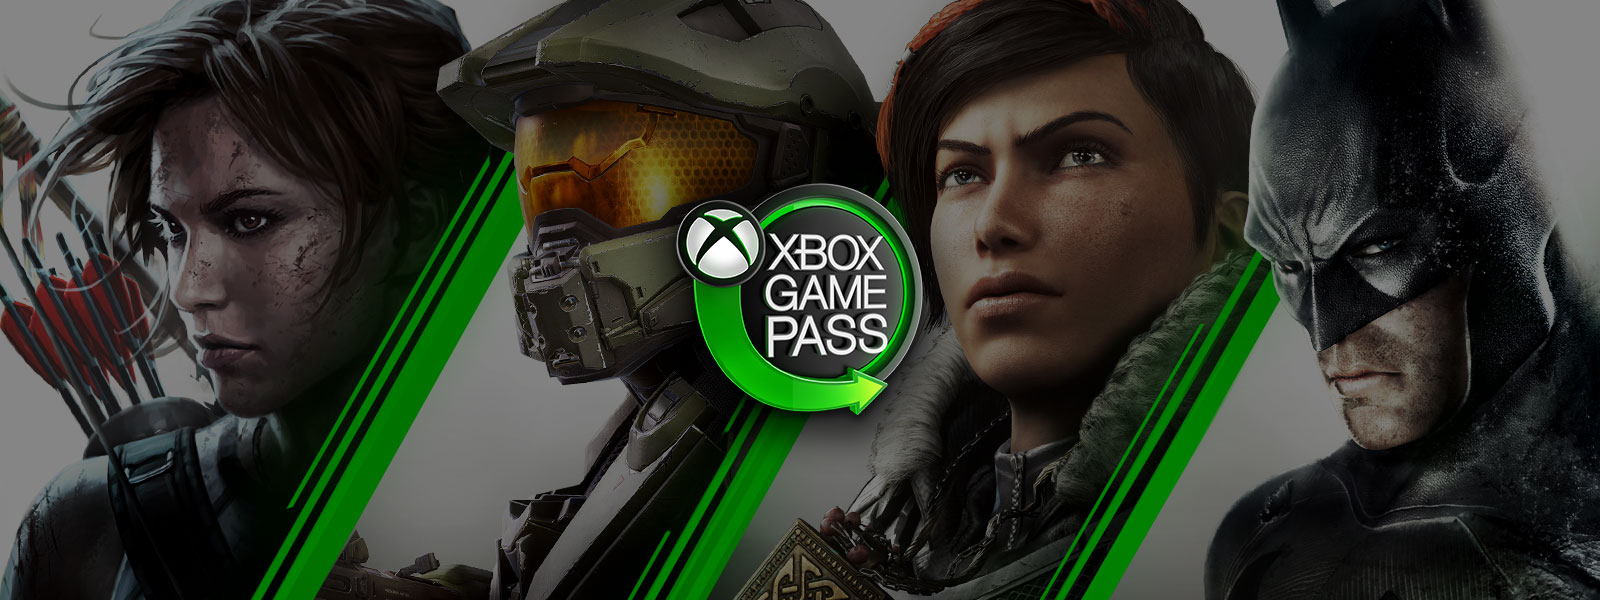 Sinal neon do Xbox Game Pass com o logotipo do Xbox Nexus e a seta verde, cercada por Lara Croft, Master Chief, Kait Diaz e Batman.